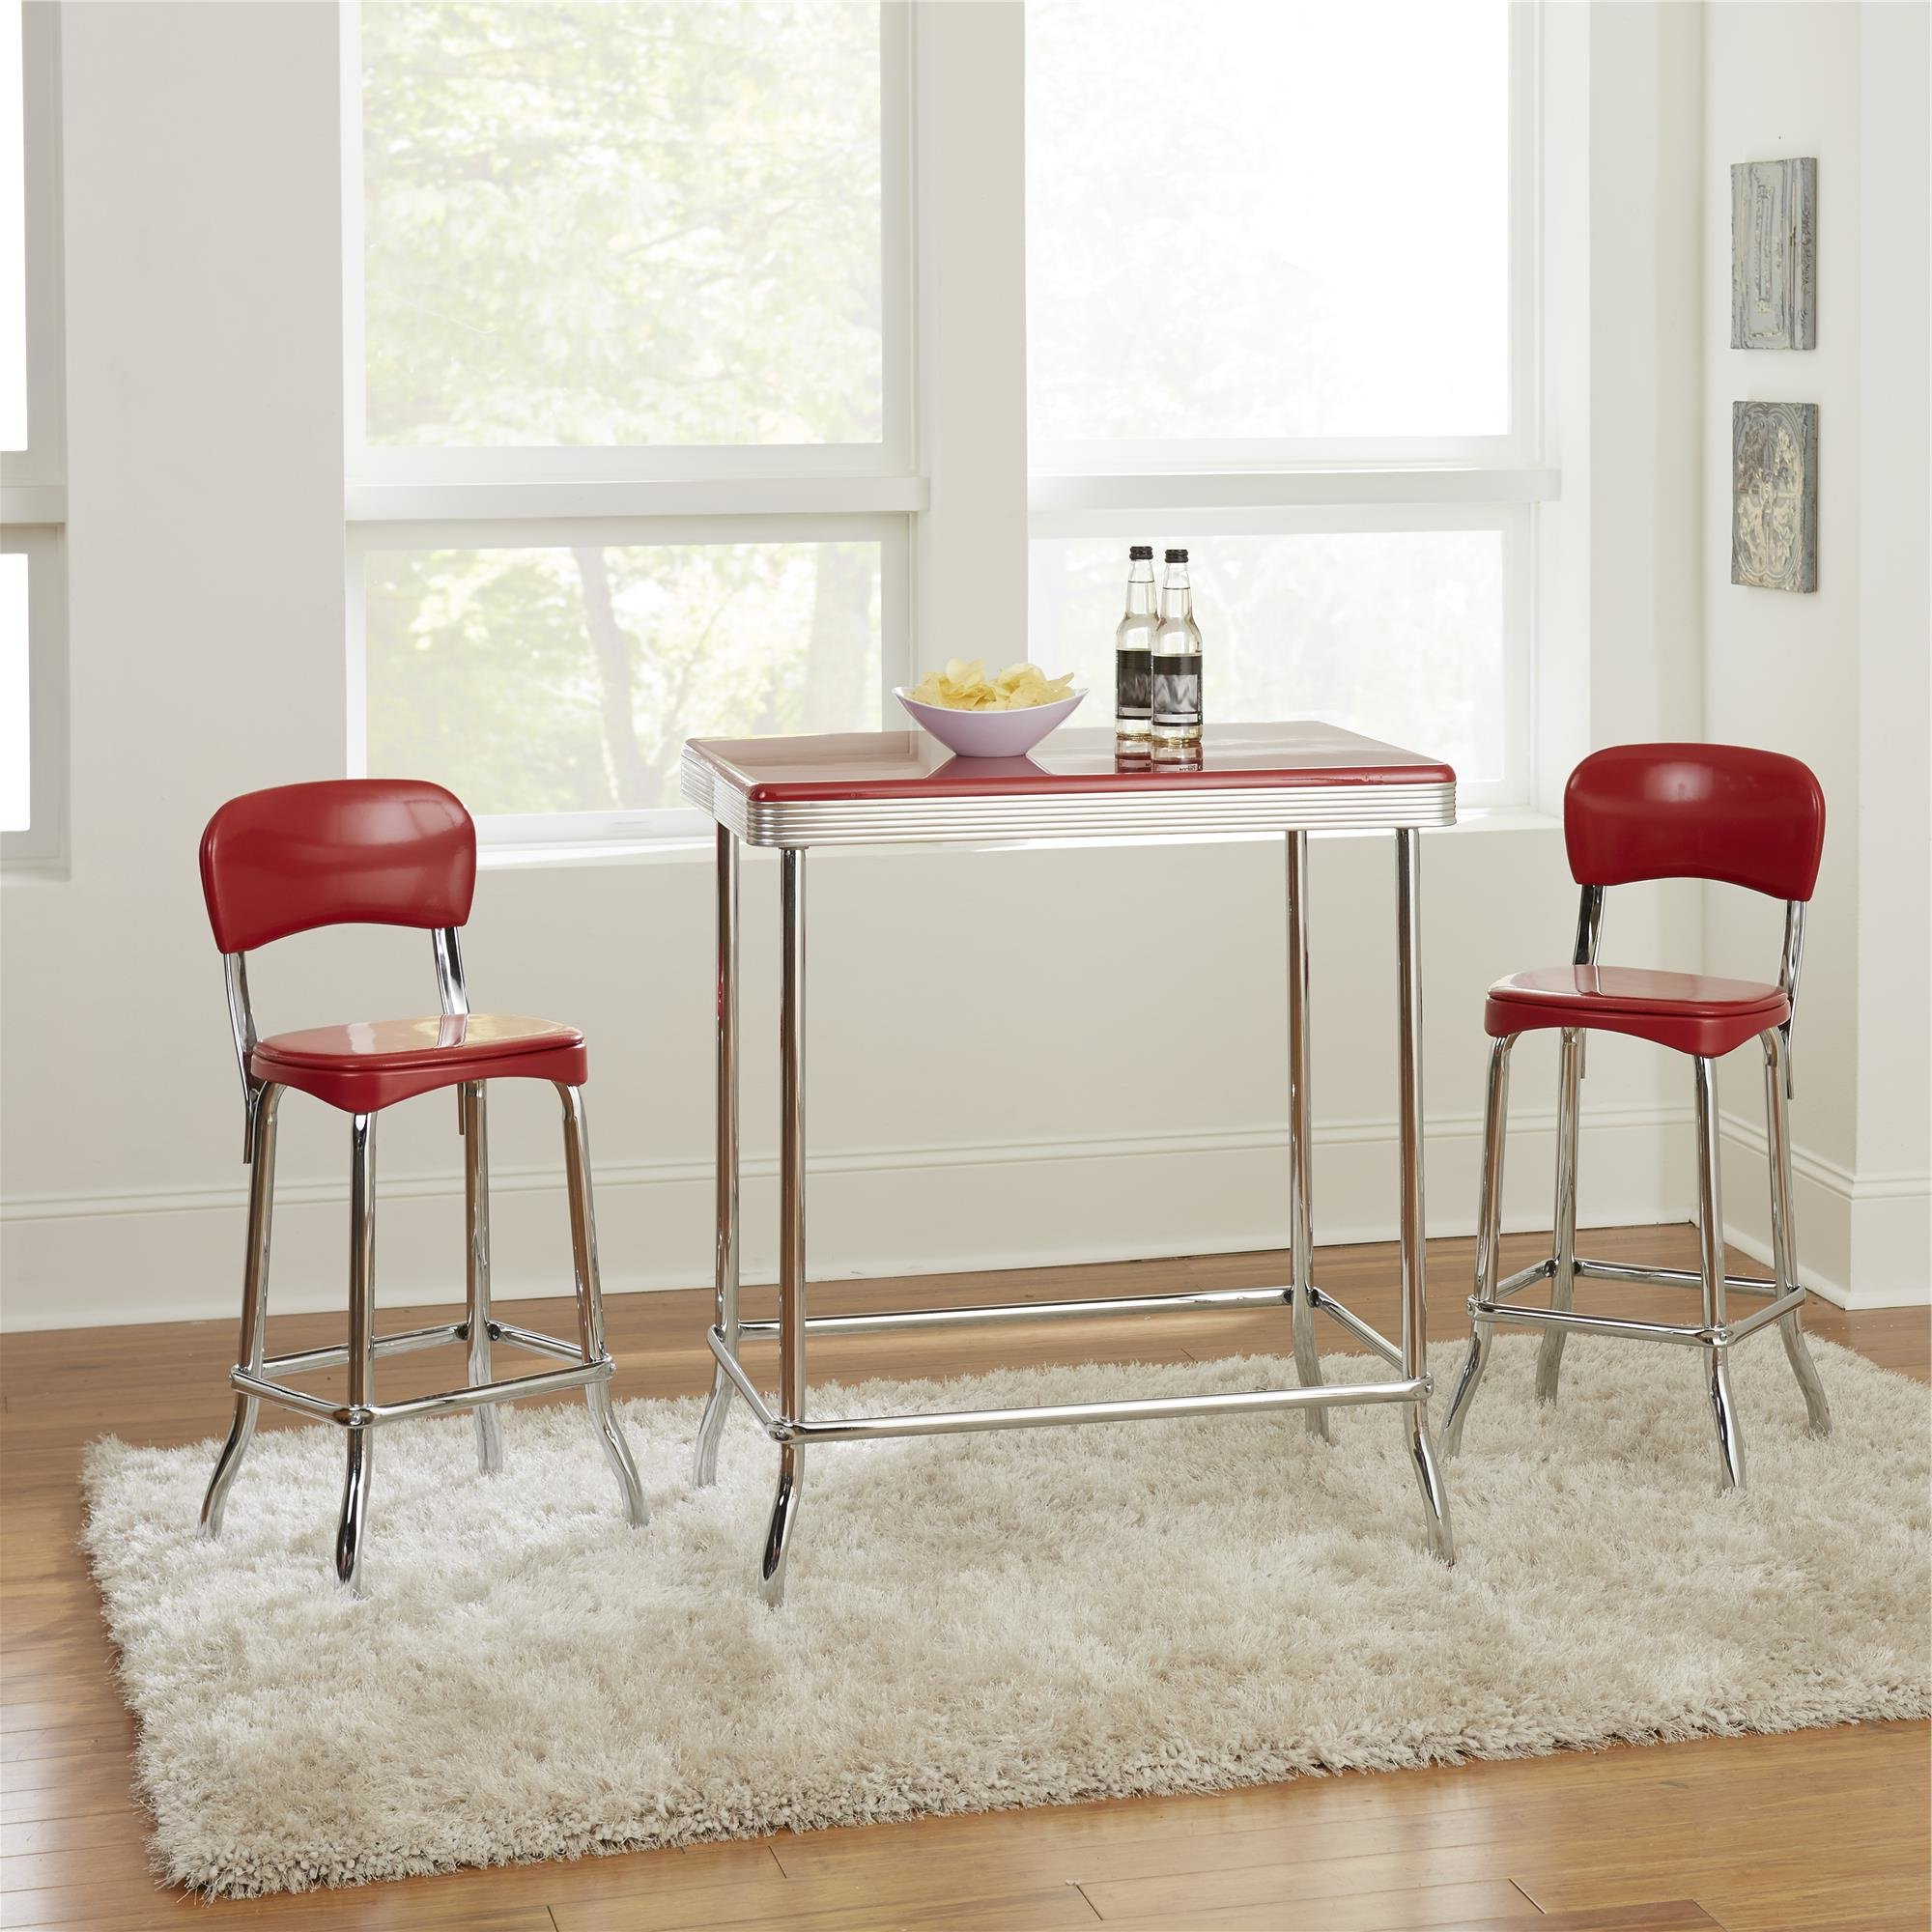 Bate Red Retro 3 Piece Dining Set In Fashionable Smyrna 3 Piece Dining Sets (Gallery 12 of 20)